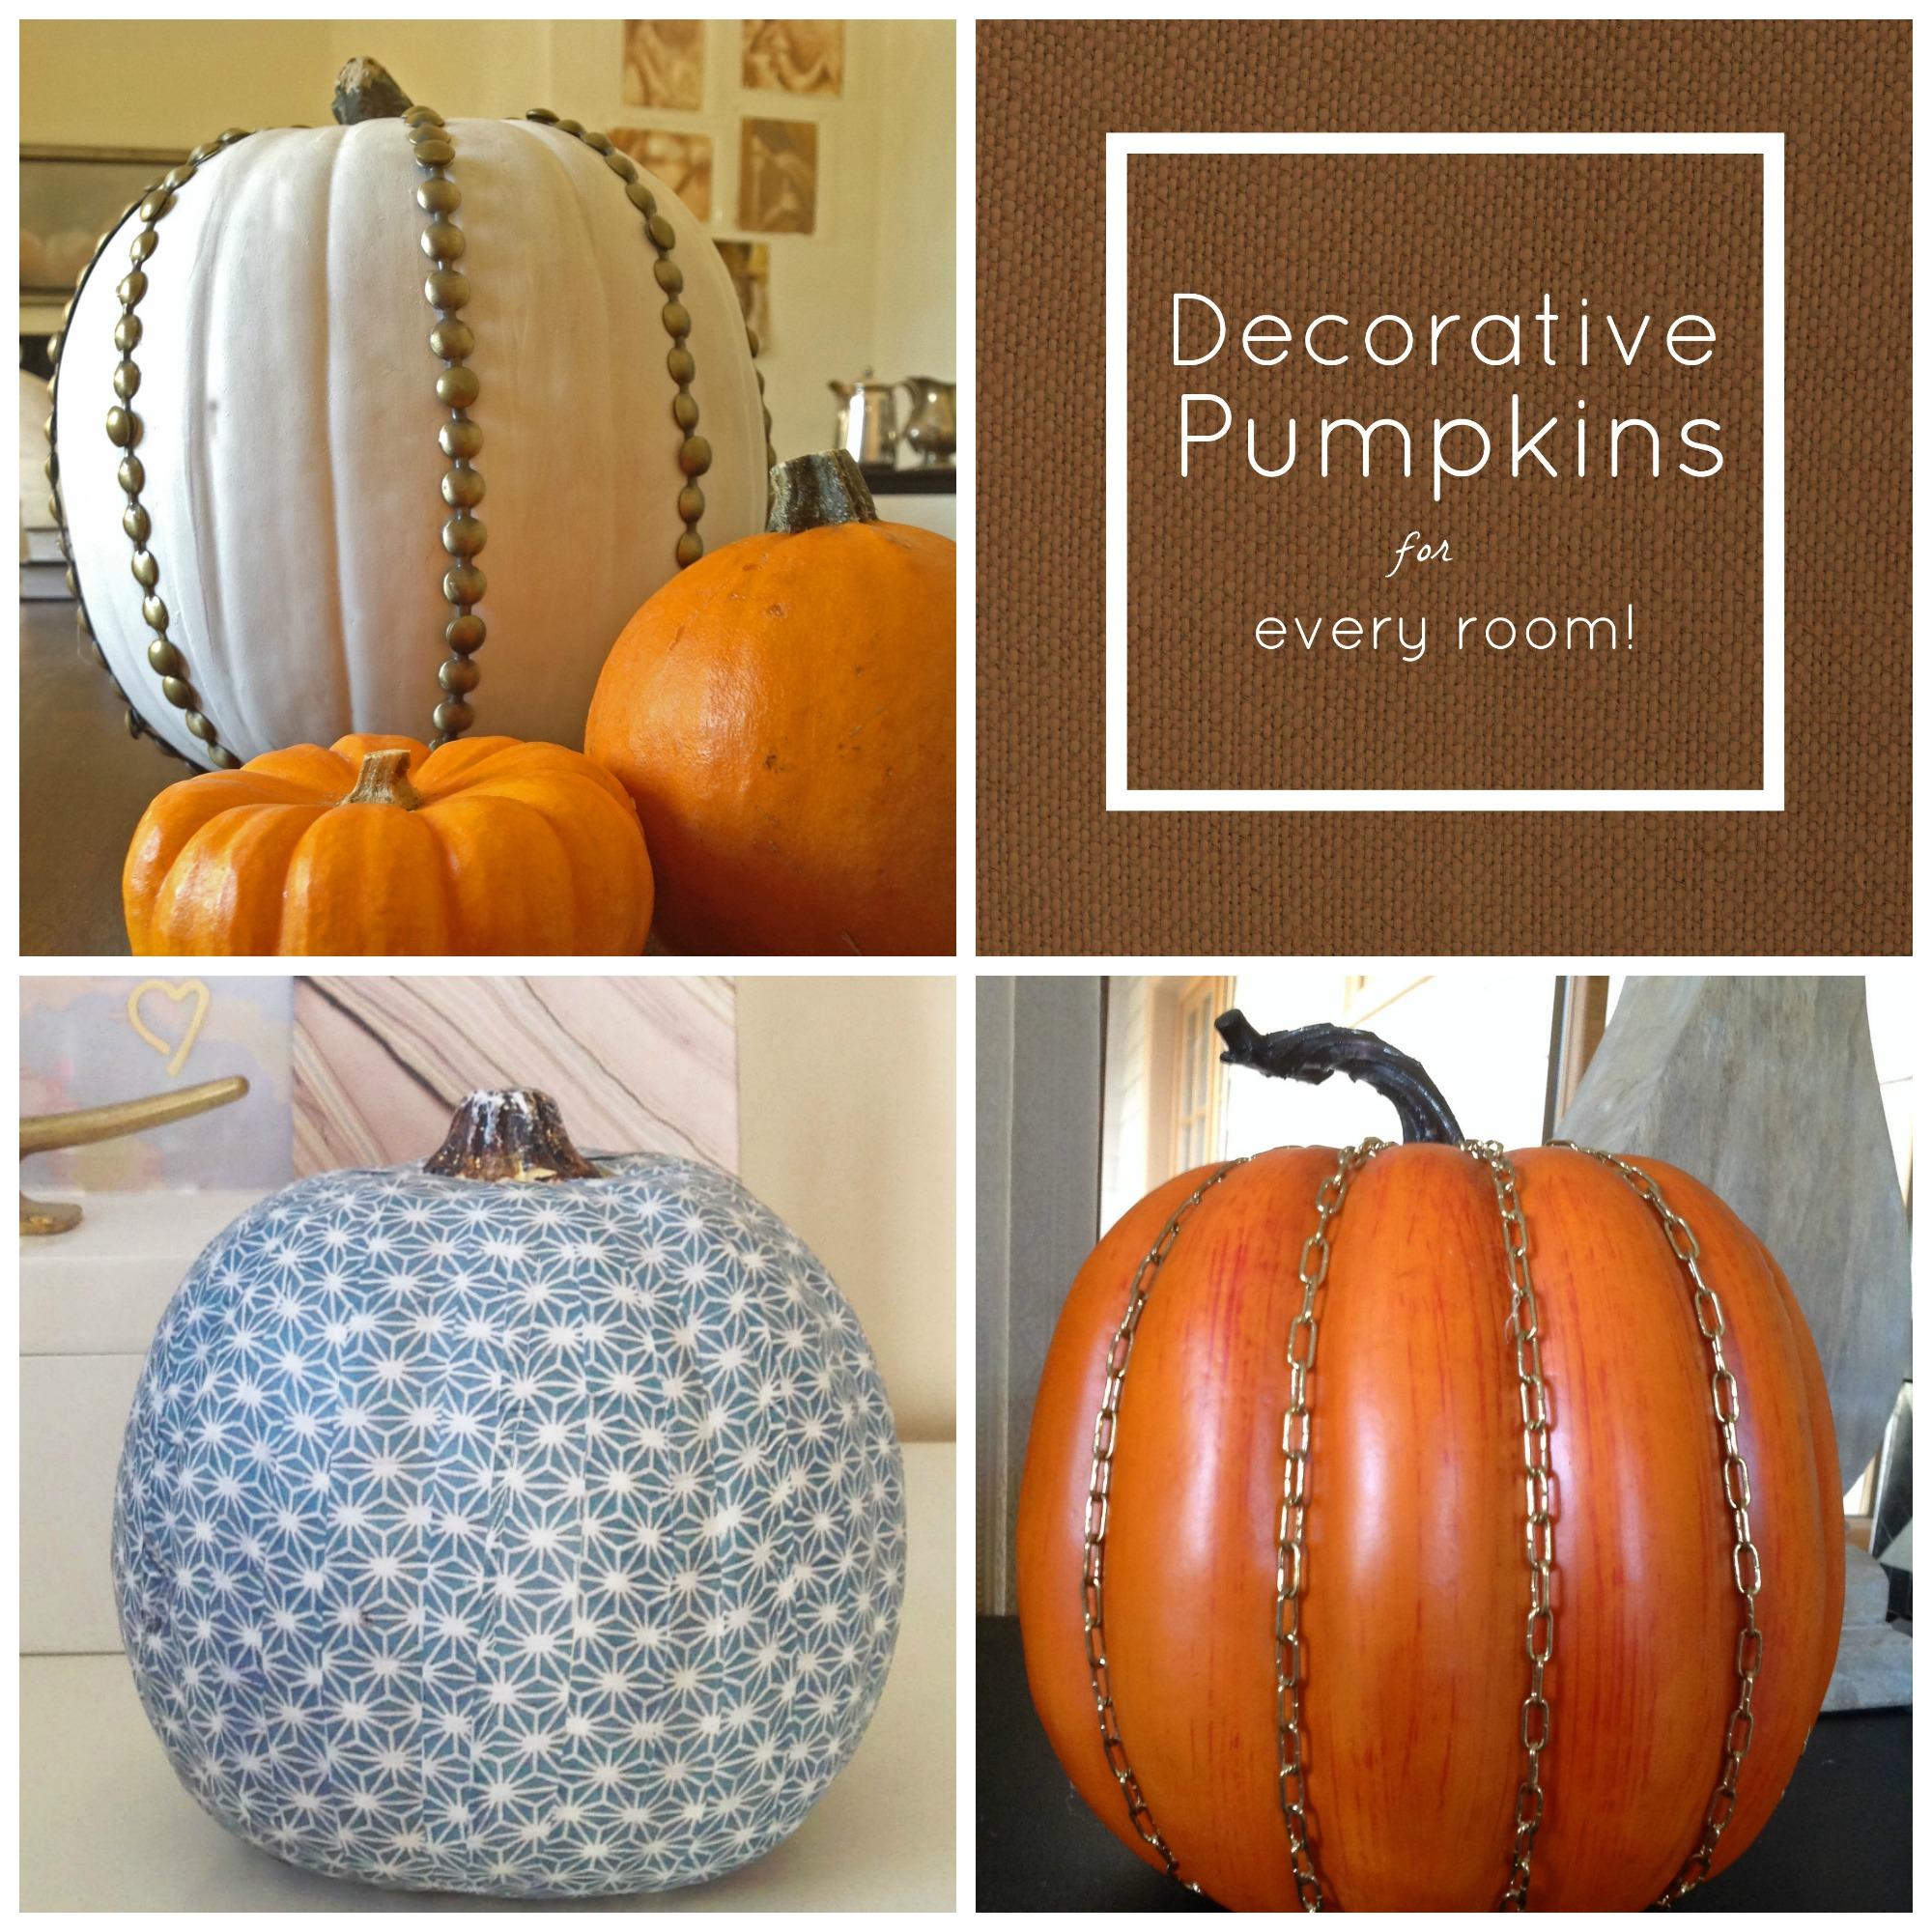 A Decorative Pumpkin For Every Room  sc 1 st  Once Again My Dear Irene & A Decorative Pumpkin For Every Room   Once Again My Dear Irene